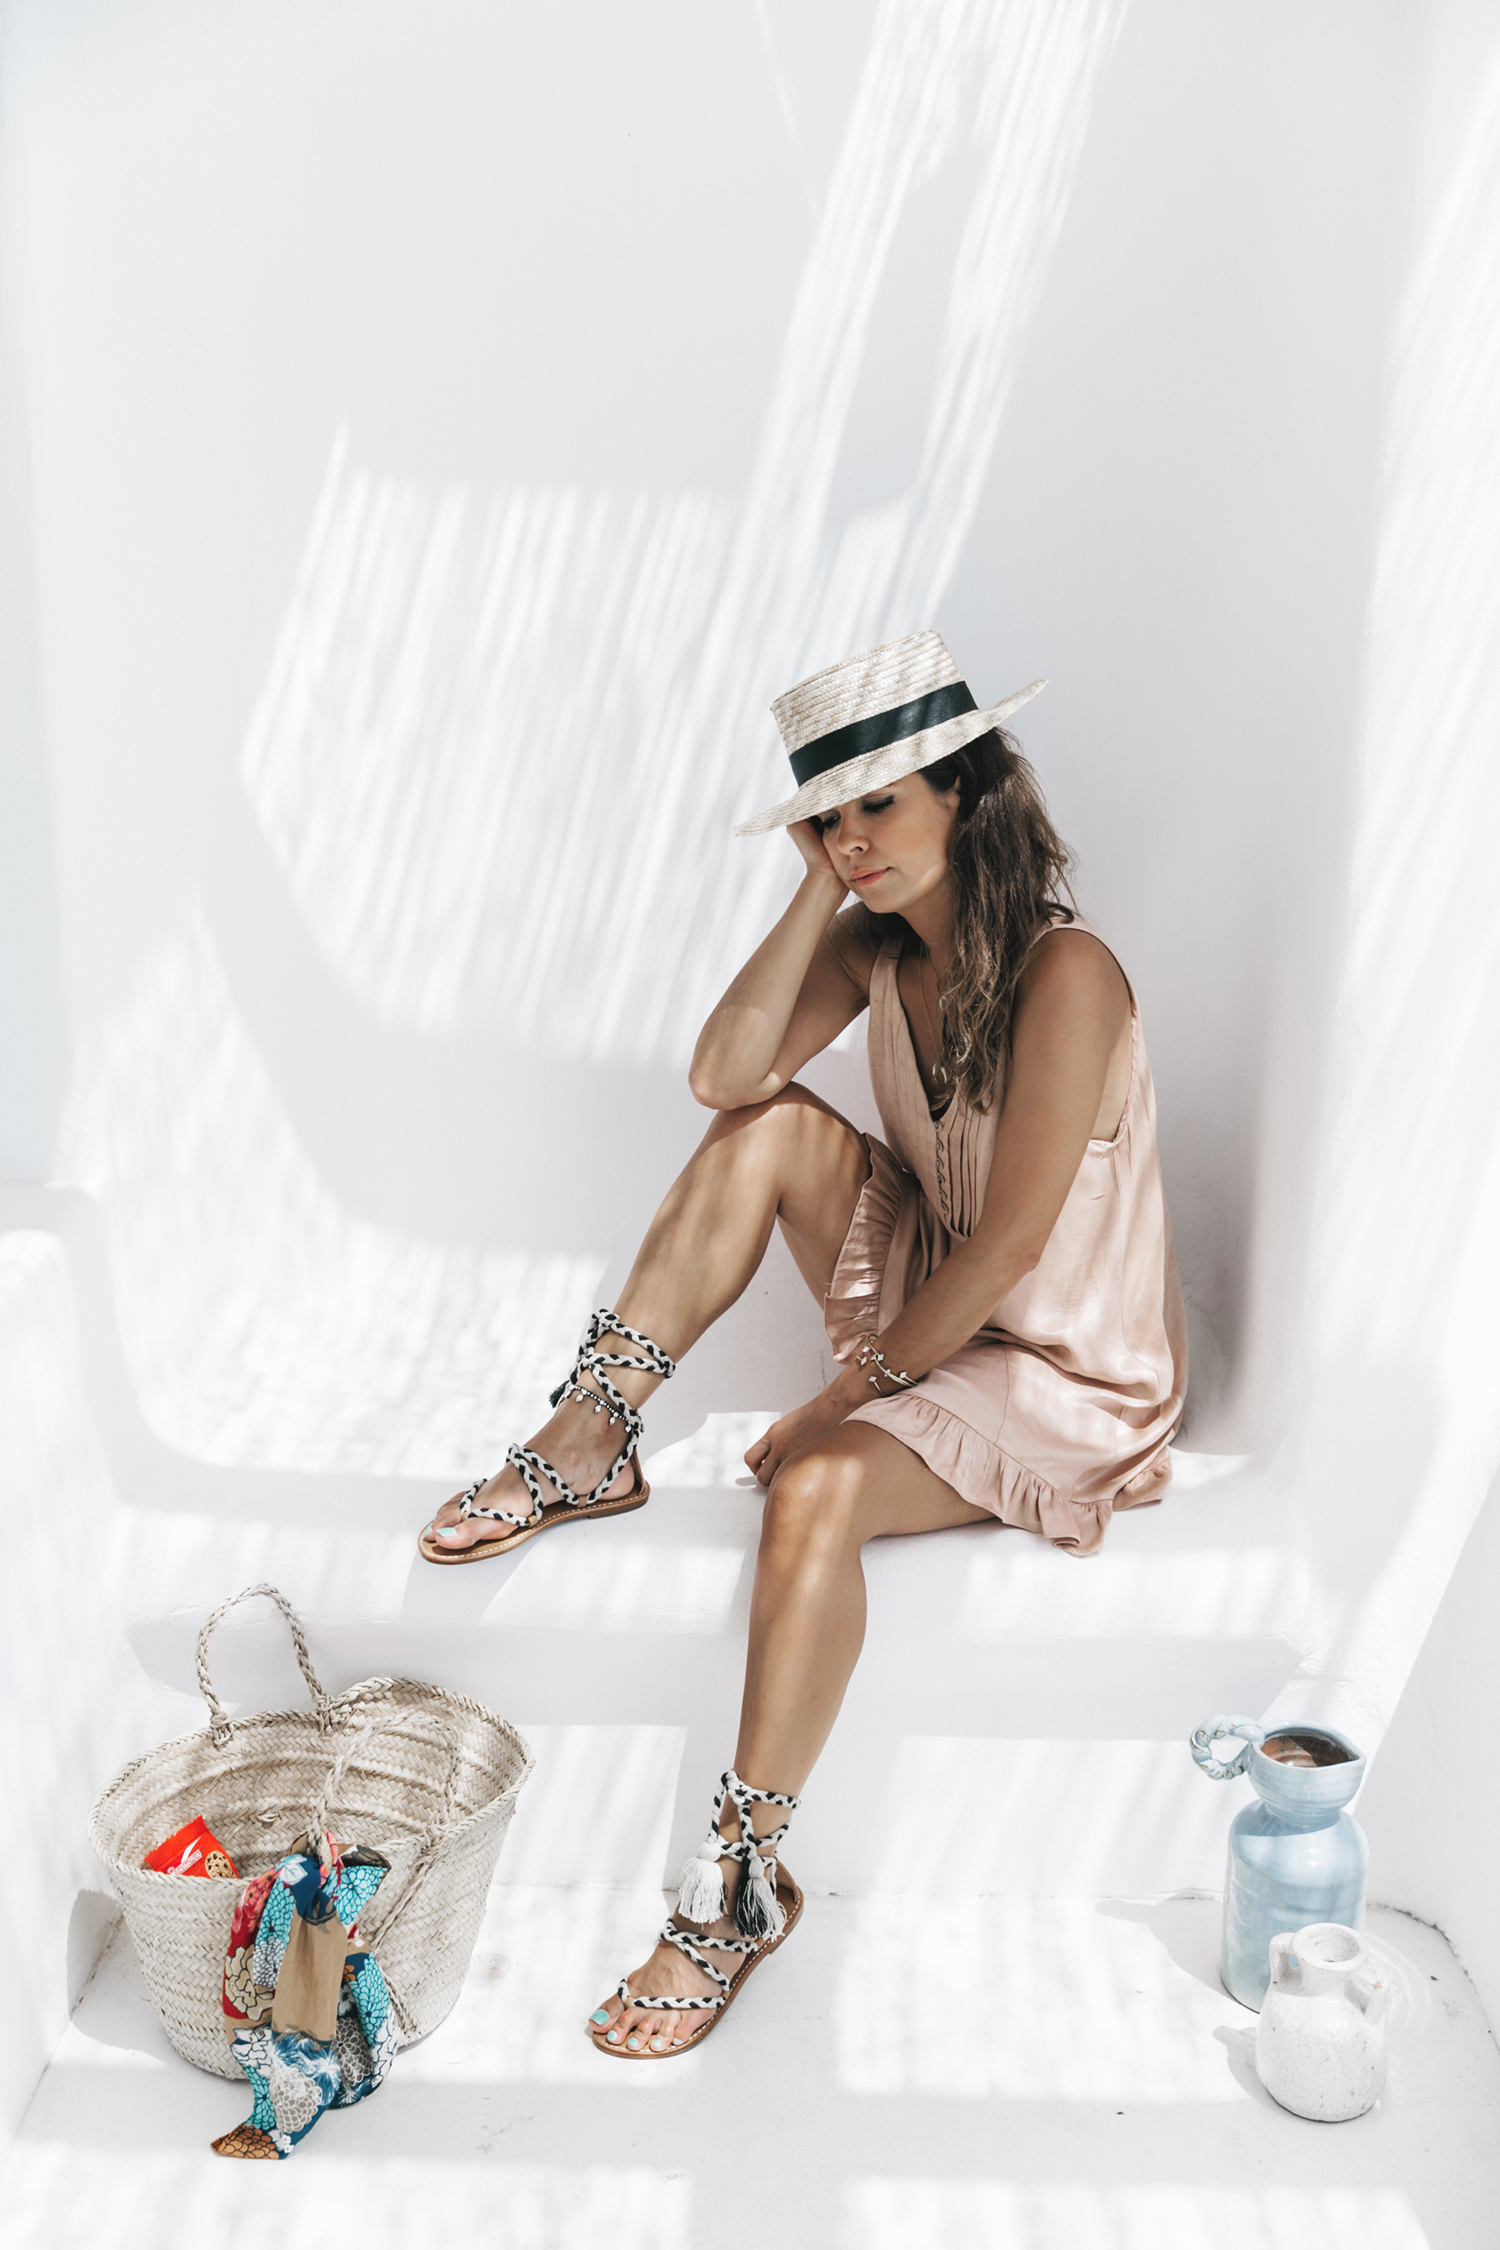 Soludos-Soludos_Escapes-Light_Pink_Dress-Knotted_Sandals-Mykonos-Greece-Collage_Vintage-Summer_Outfit-Street_Style-5